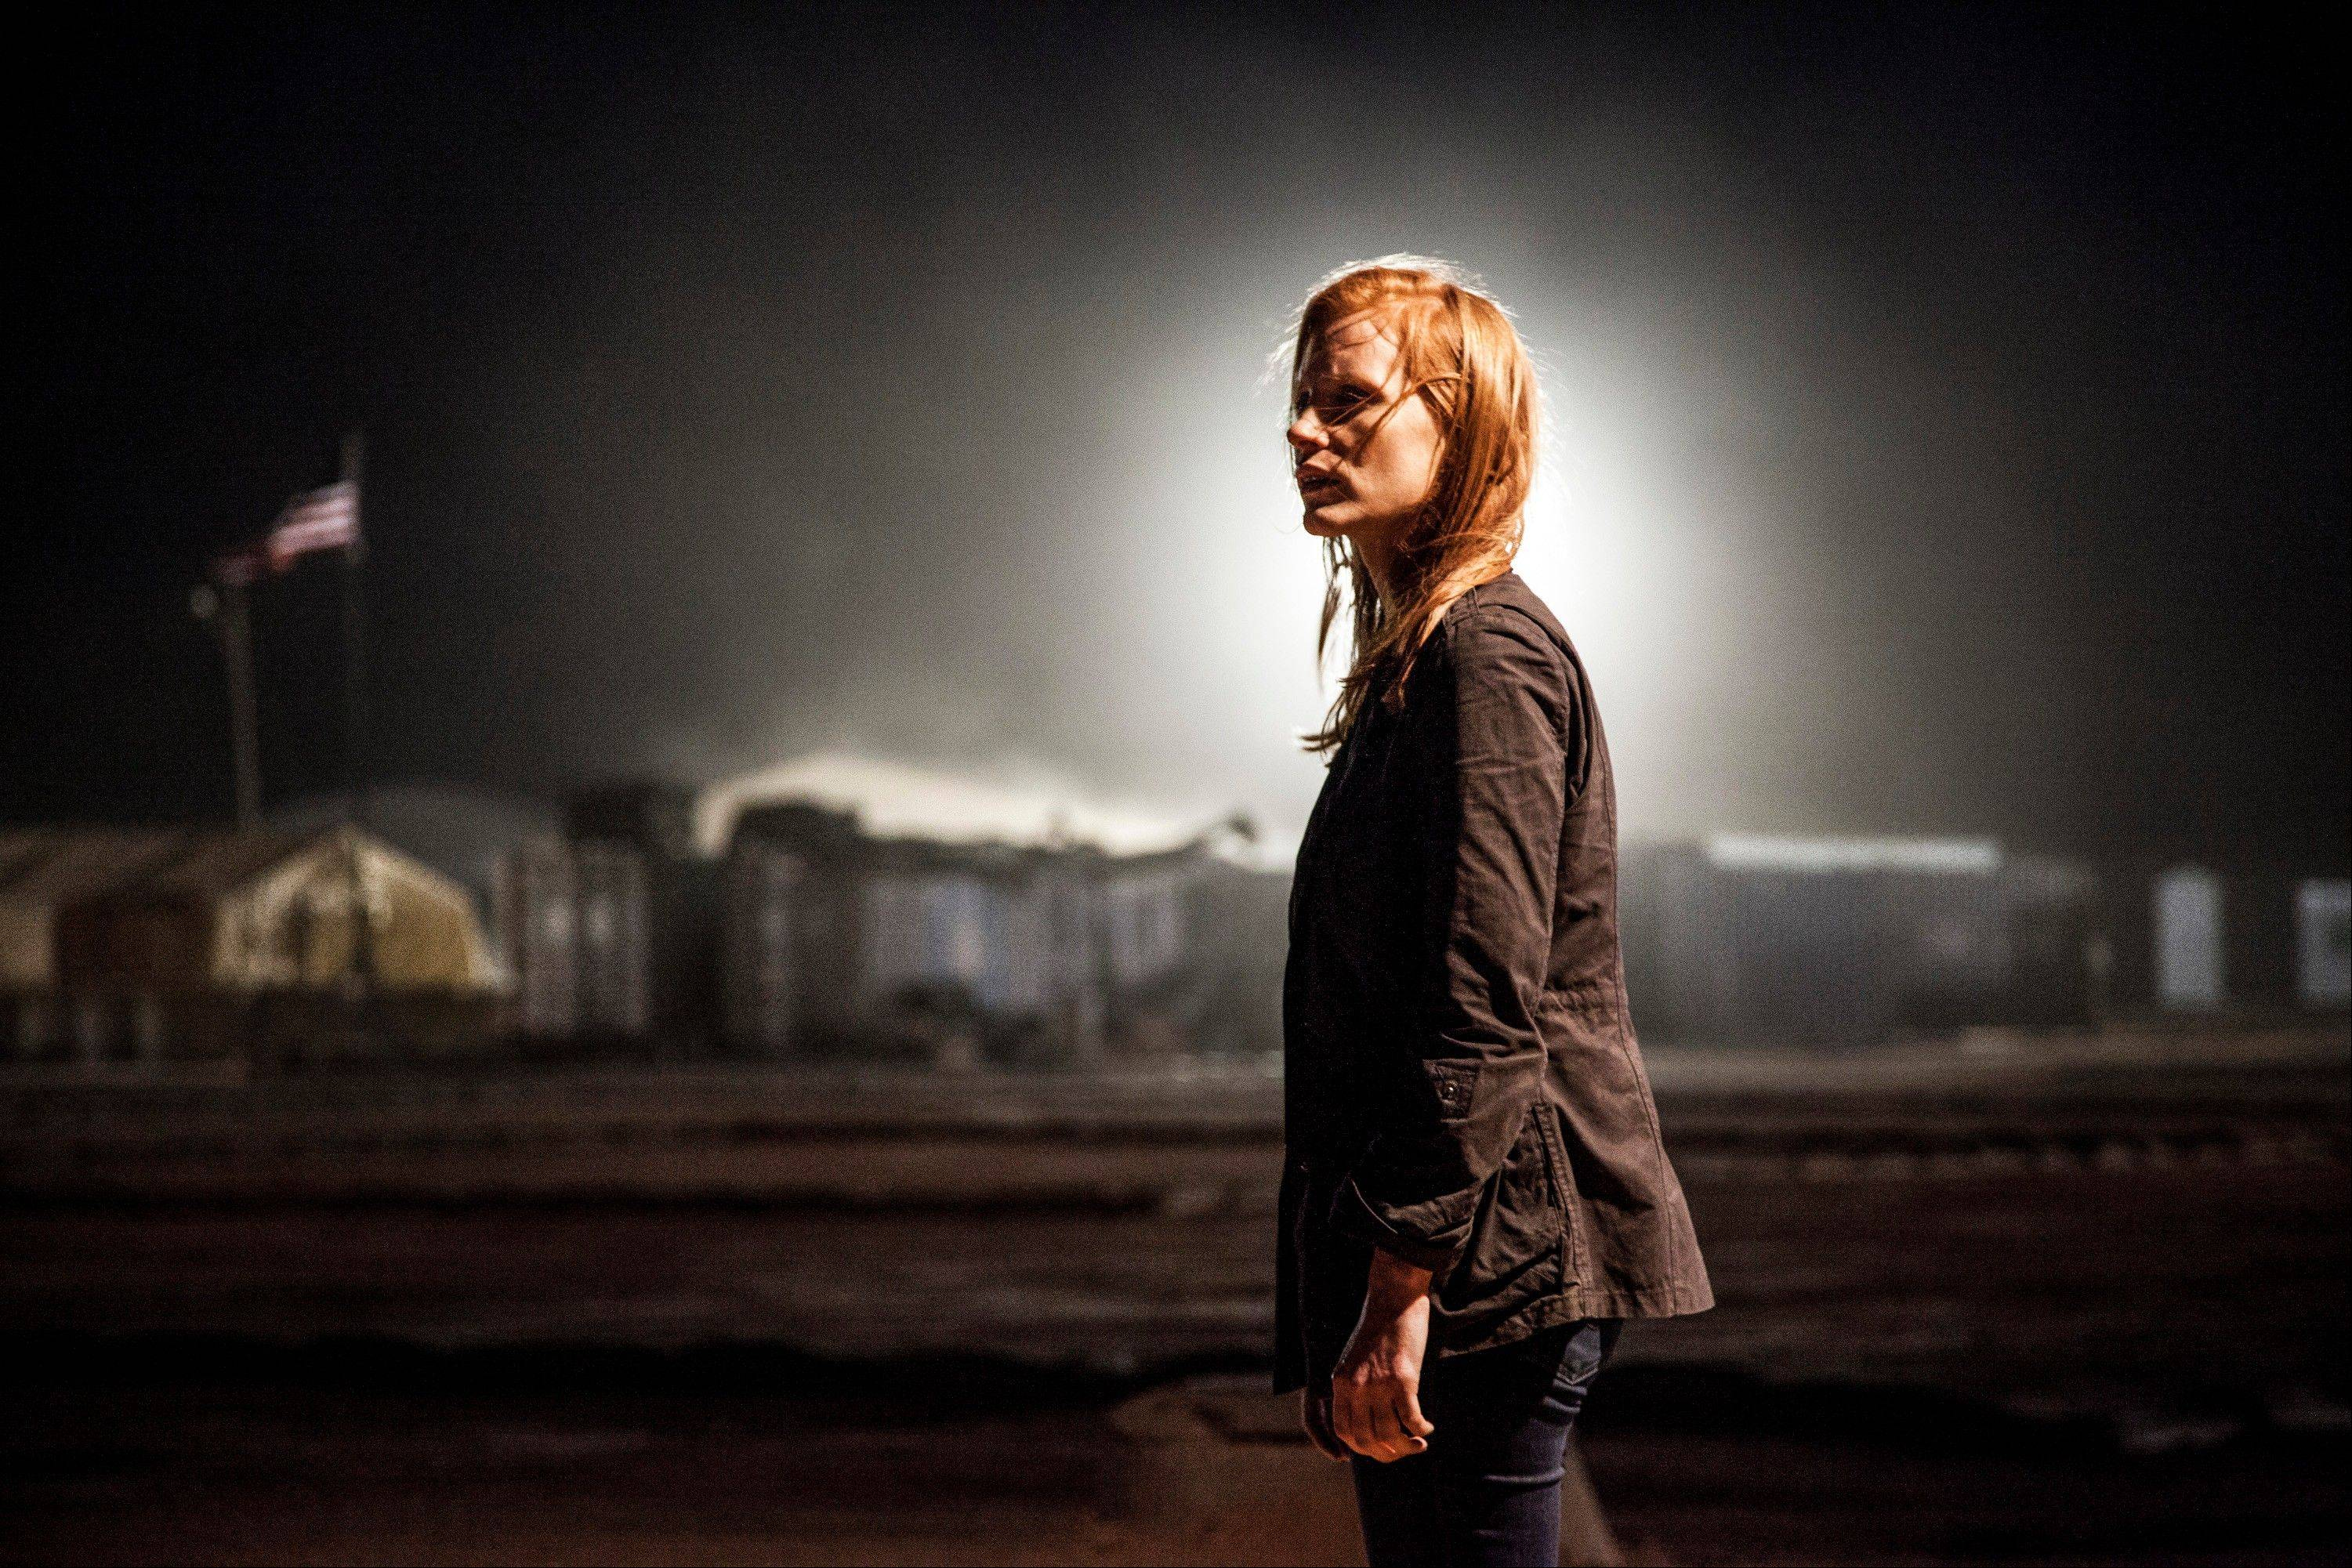 "This undated publicity photo released by Columbia Pictures Industries, Inc. shows Jessica Chastain, as Maya, a member of the elite team of spies and military operatives stationed in a covert base overseas, who secretly devoted themselves to finding Osama Bin Laden in Columbia Pictures' new thriller, ""Zero Dark Thirty,"" directed by Kathryn Bigelow. The film made $24 million in its first week of release and captured the No. 1 spot at the box office."